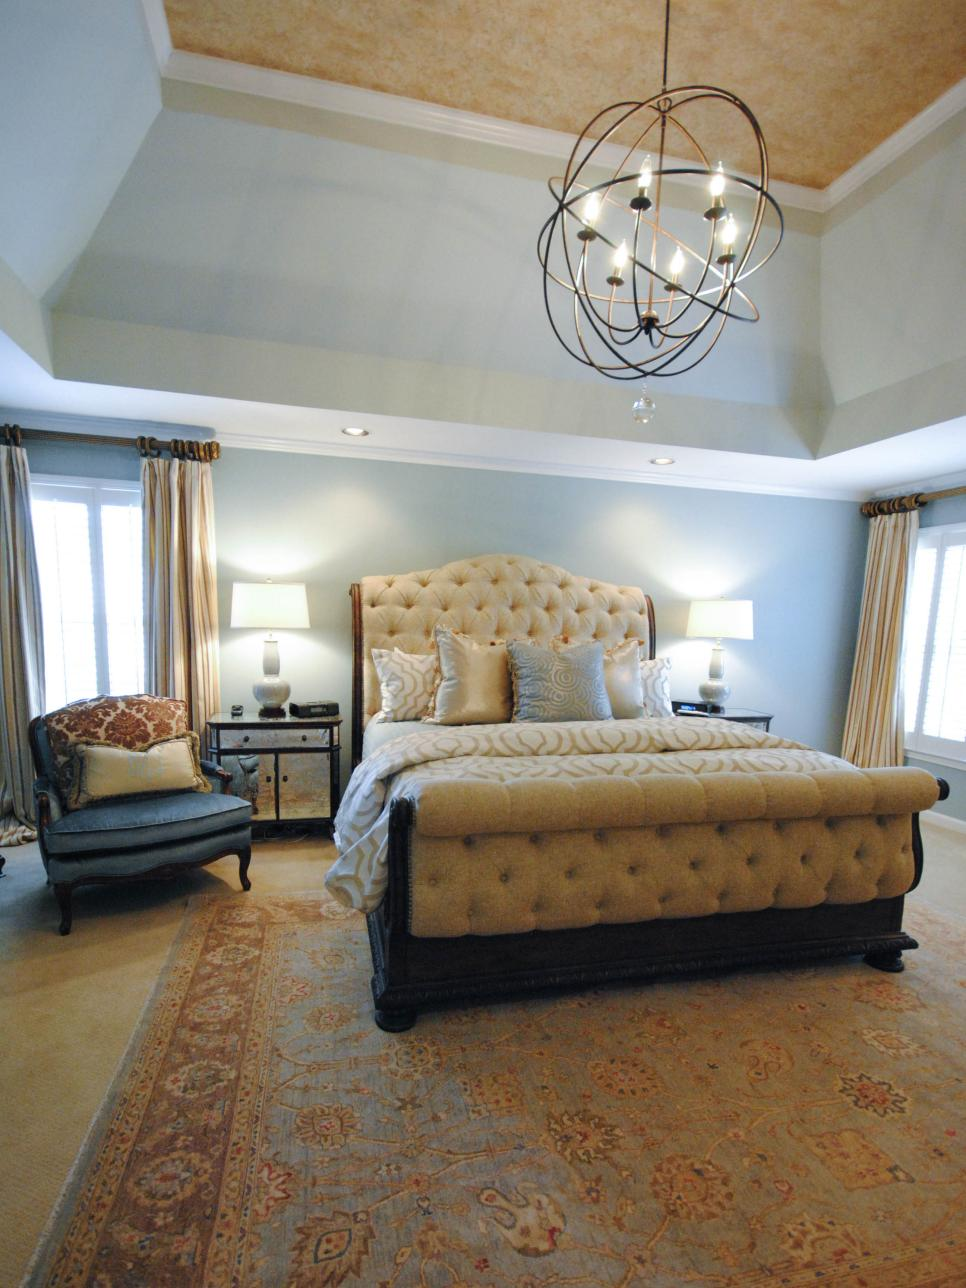 rs_paisley-mcdonald-yellow-transitional-bedroom-chandelier_3x4-jpg-rend-hgtvcom-966-1288